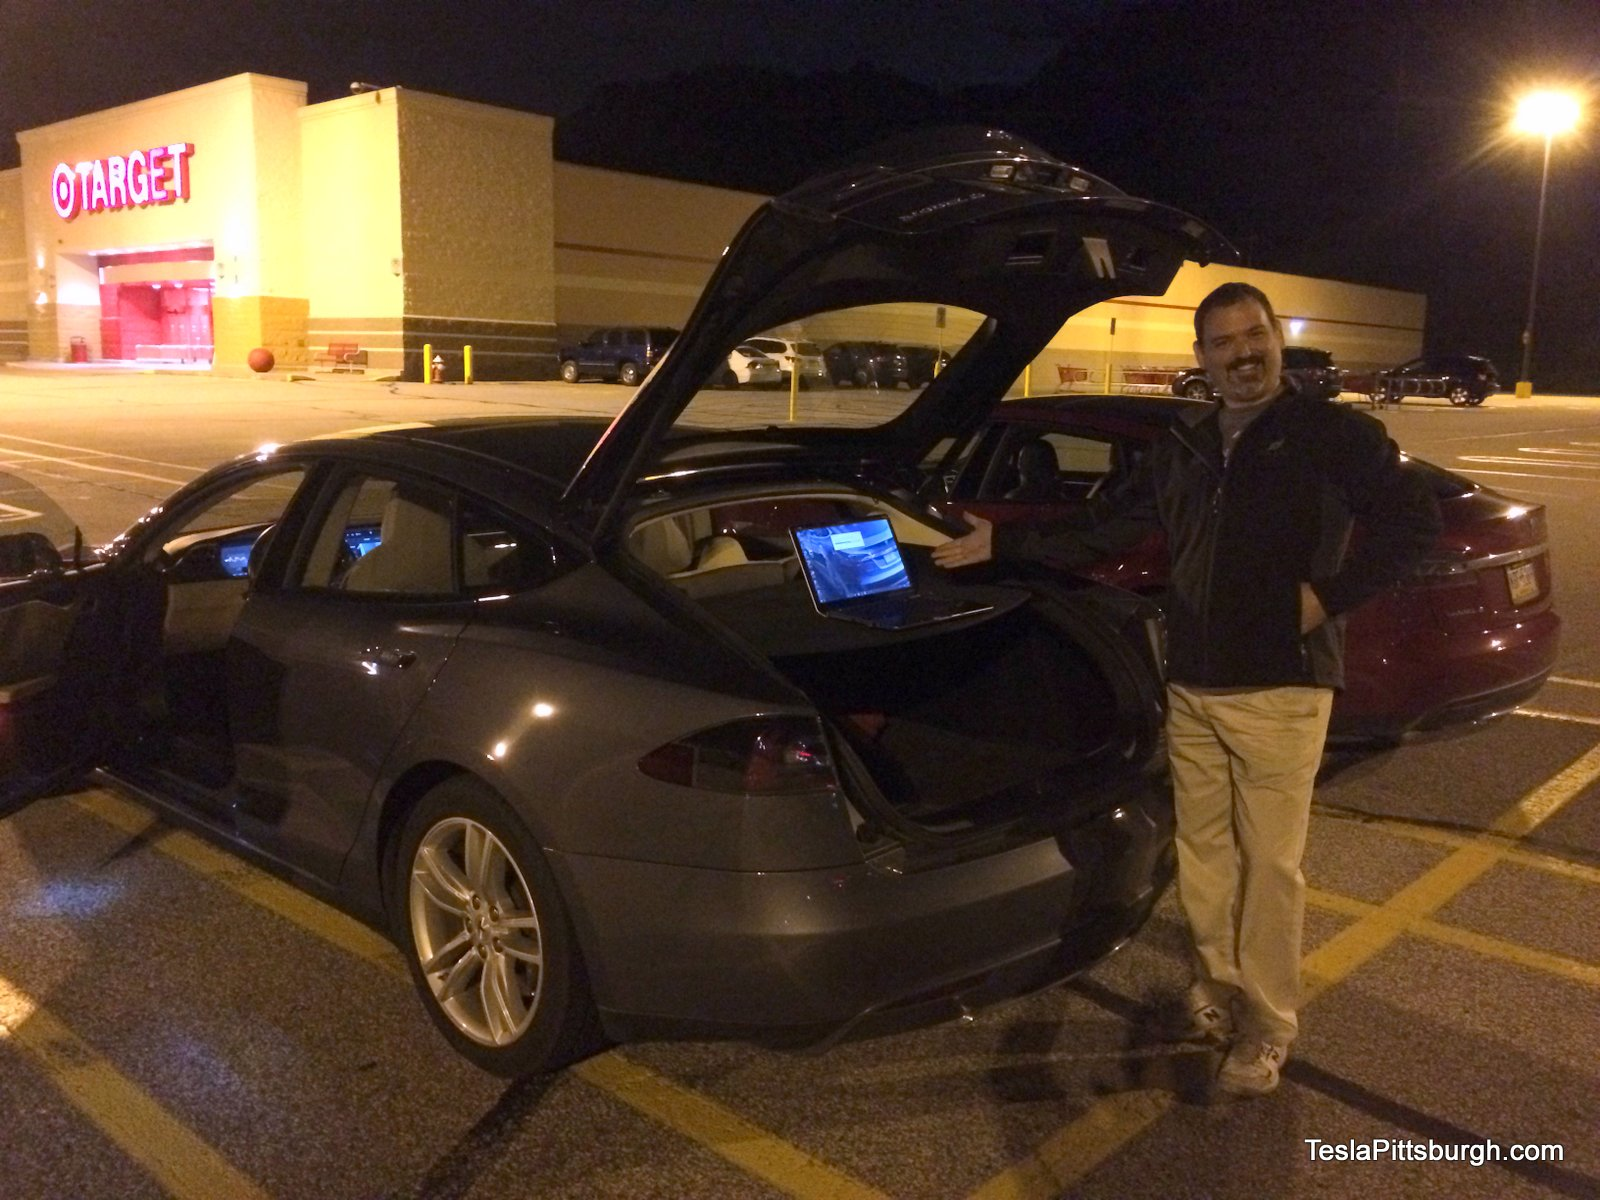 tesla-pittsburgh-dashcam-review-thinkware-f770-camera-laptop-comparison